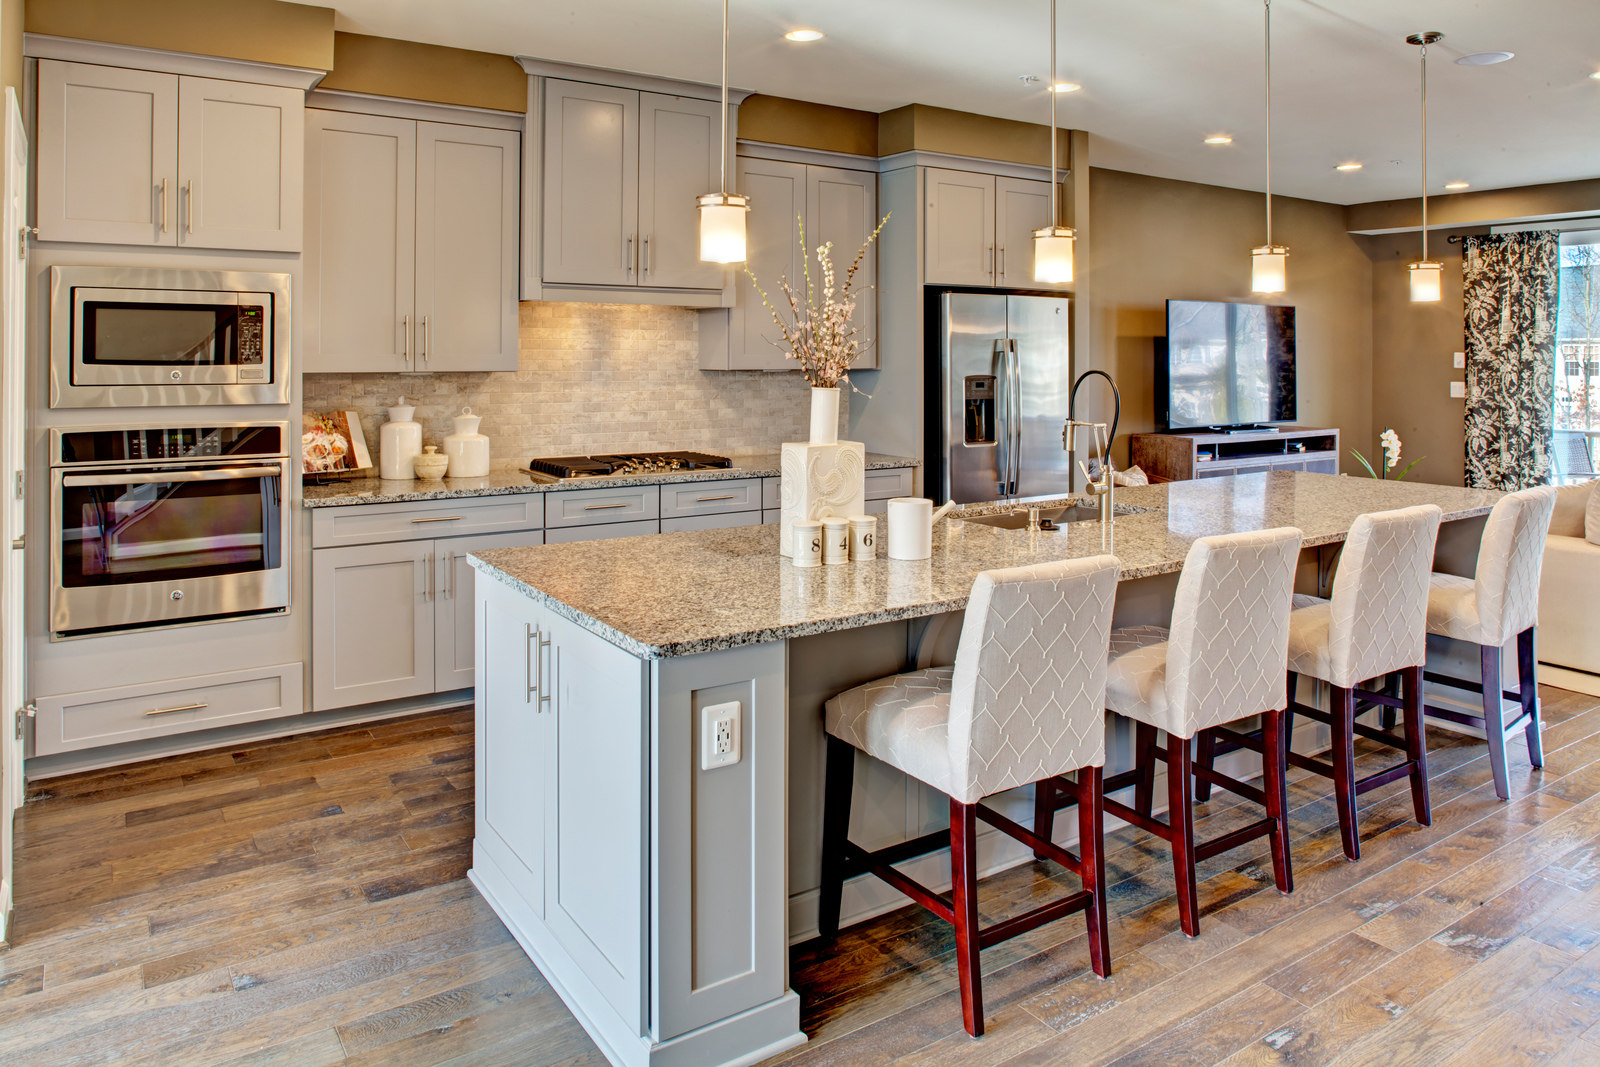 new luxury homes for sale at westmoore in ashburn, va | nvhomes